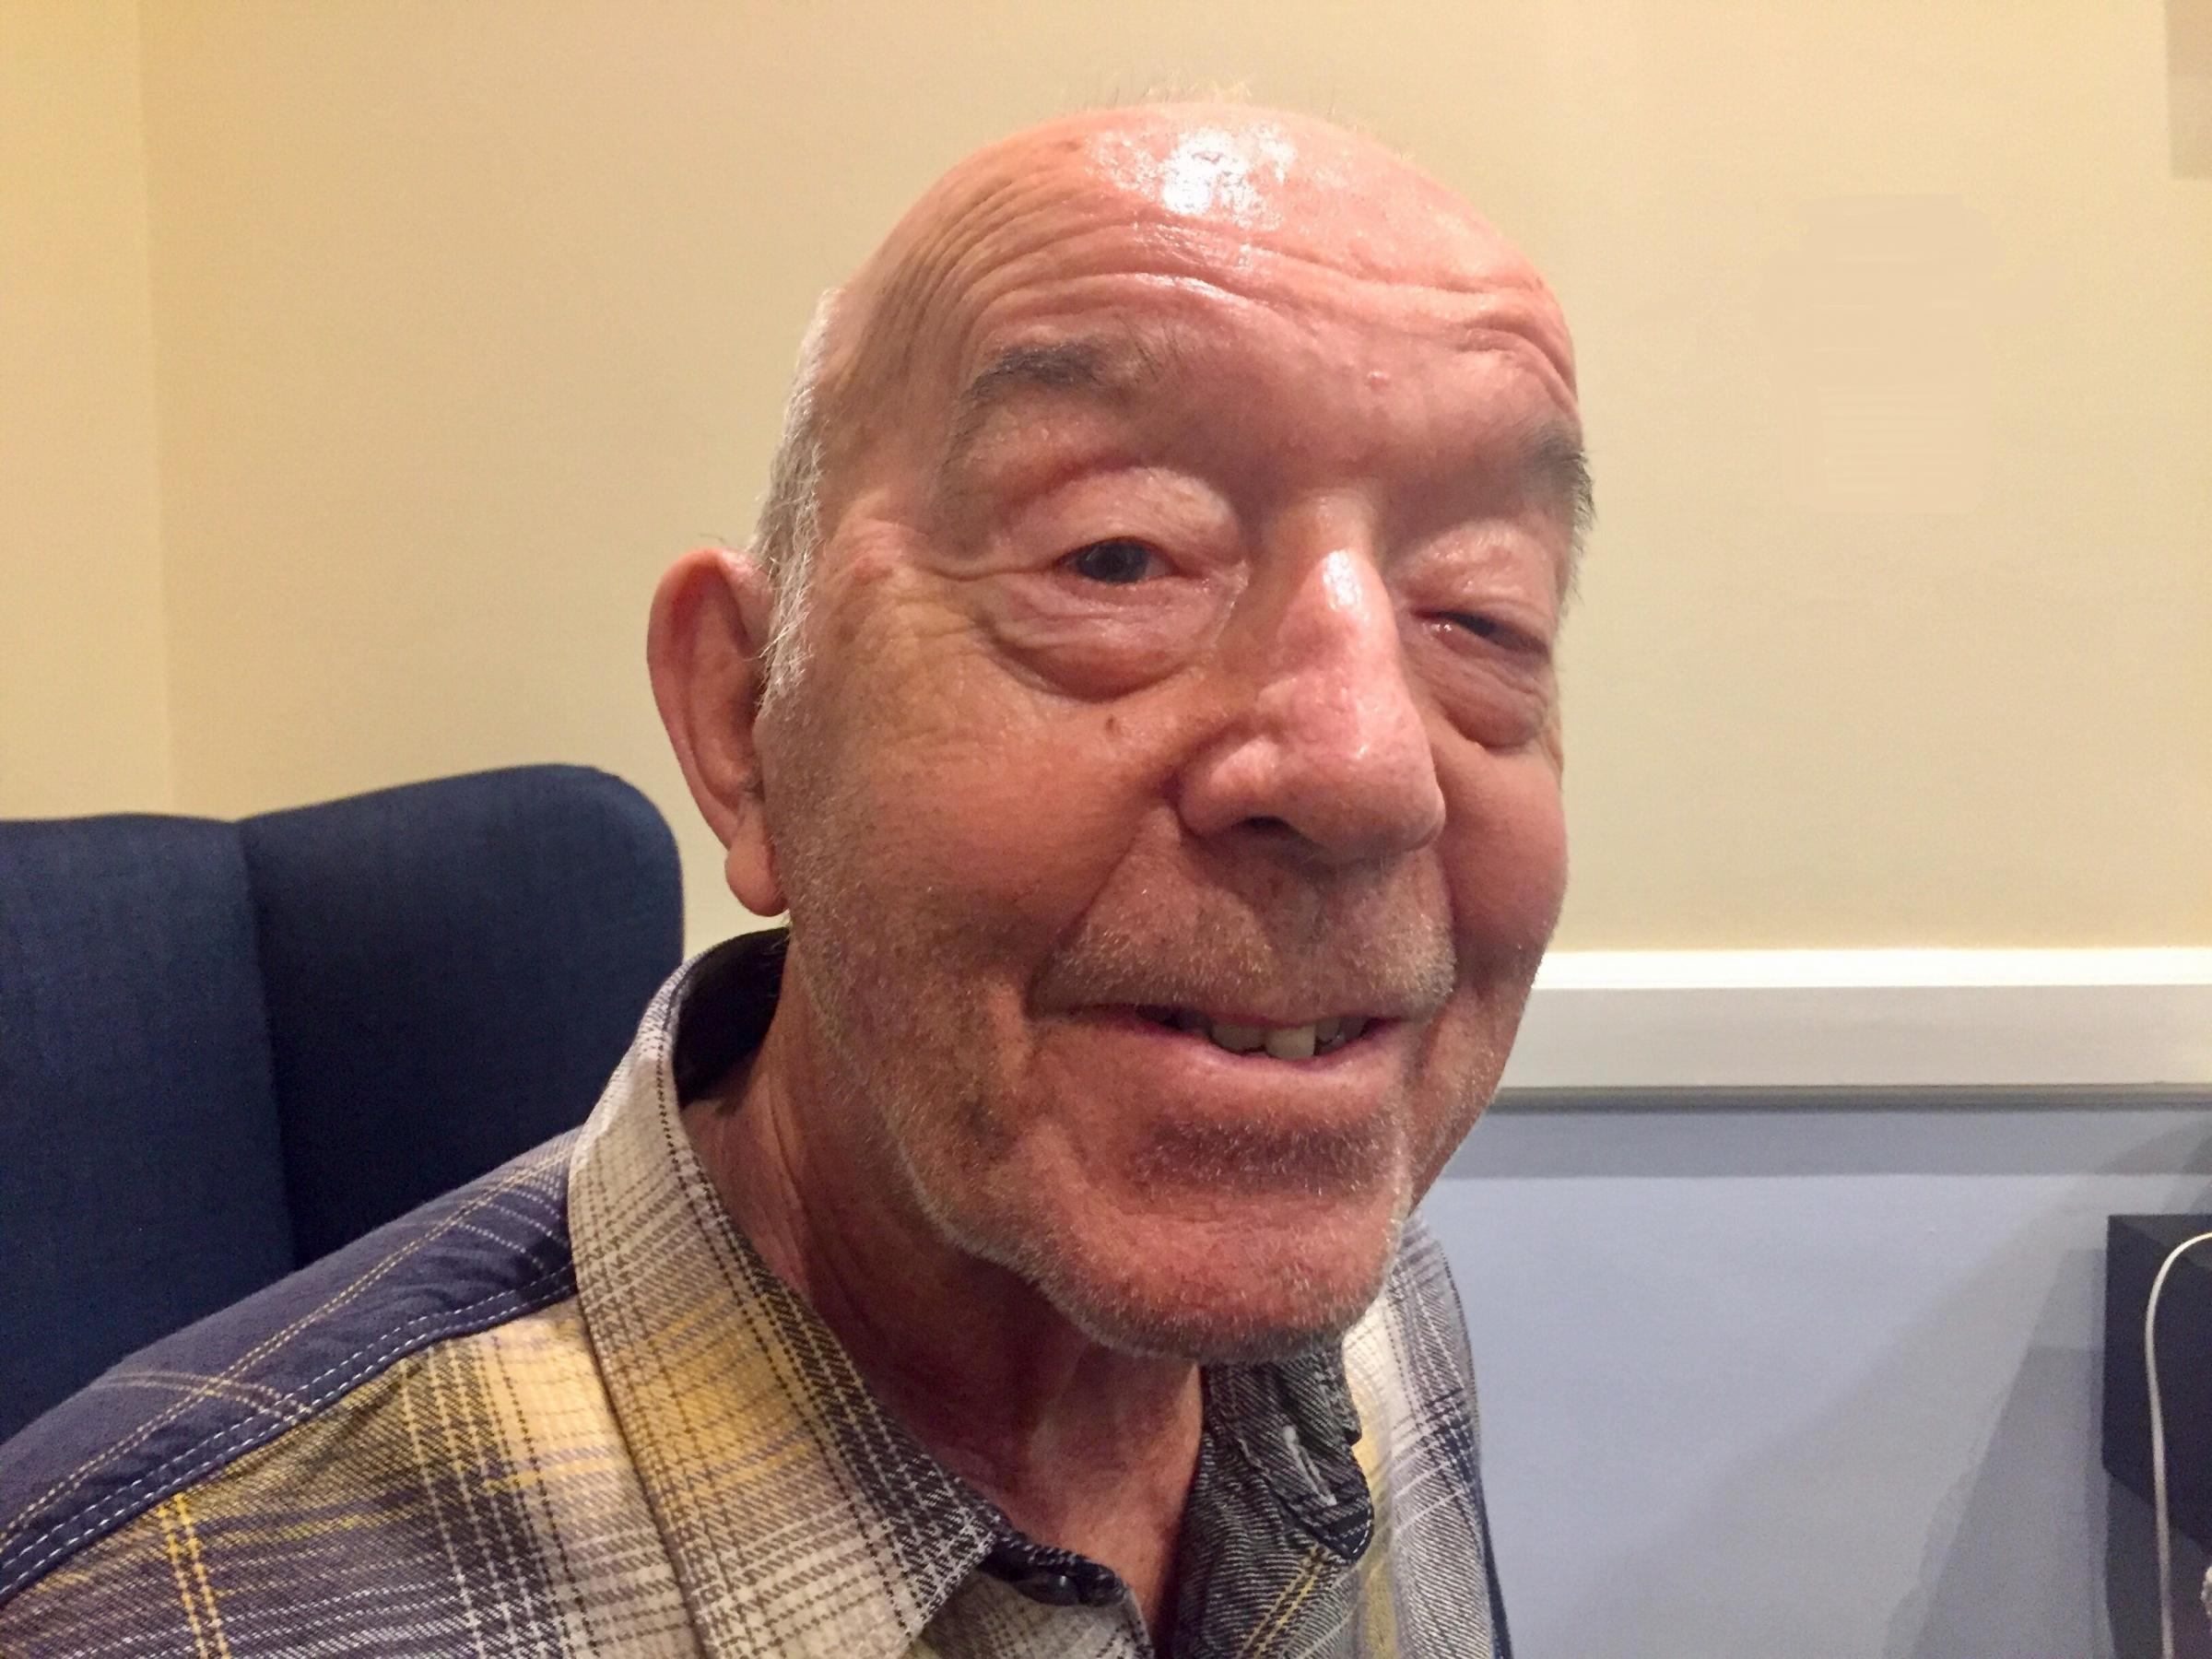 Ex-rugby player will be cheering on Wales from his care home